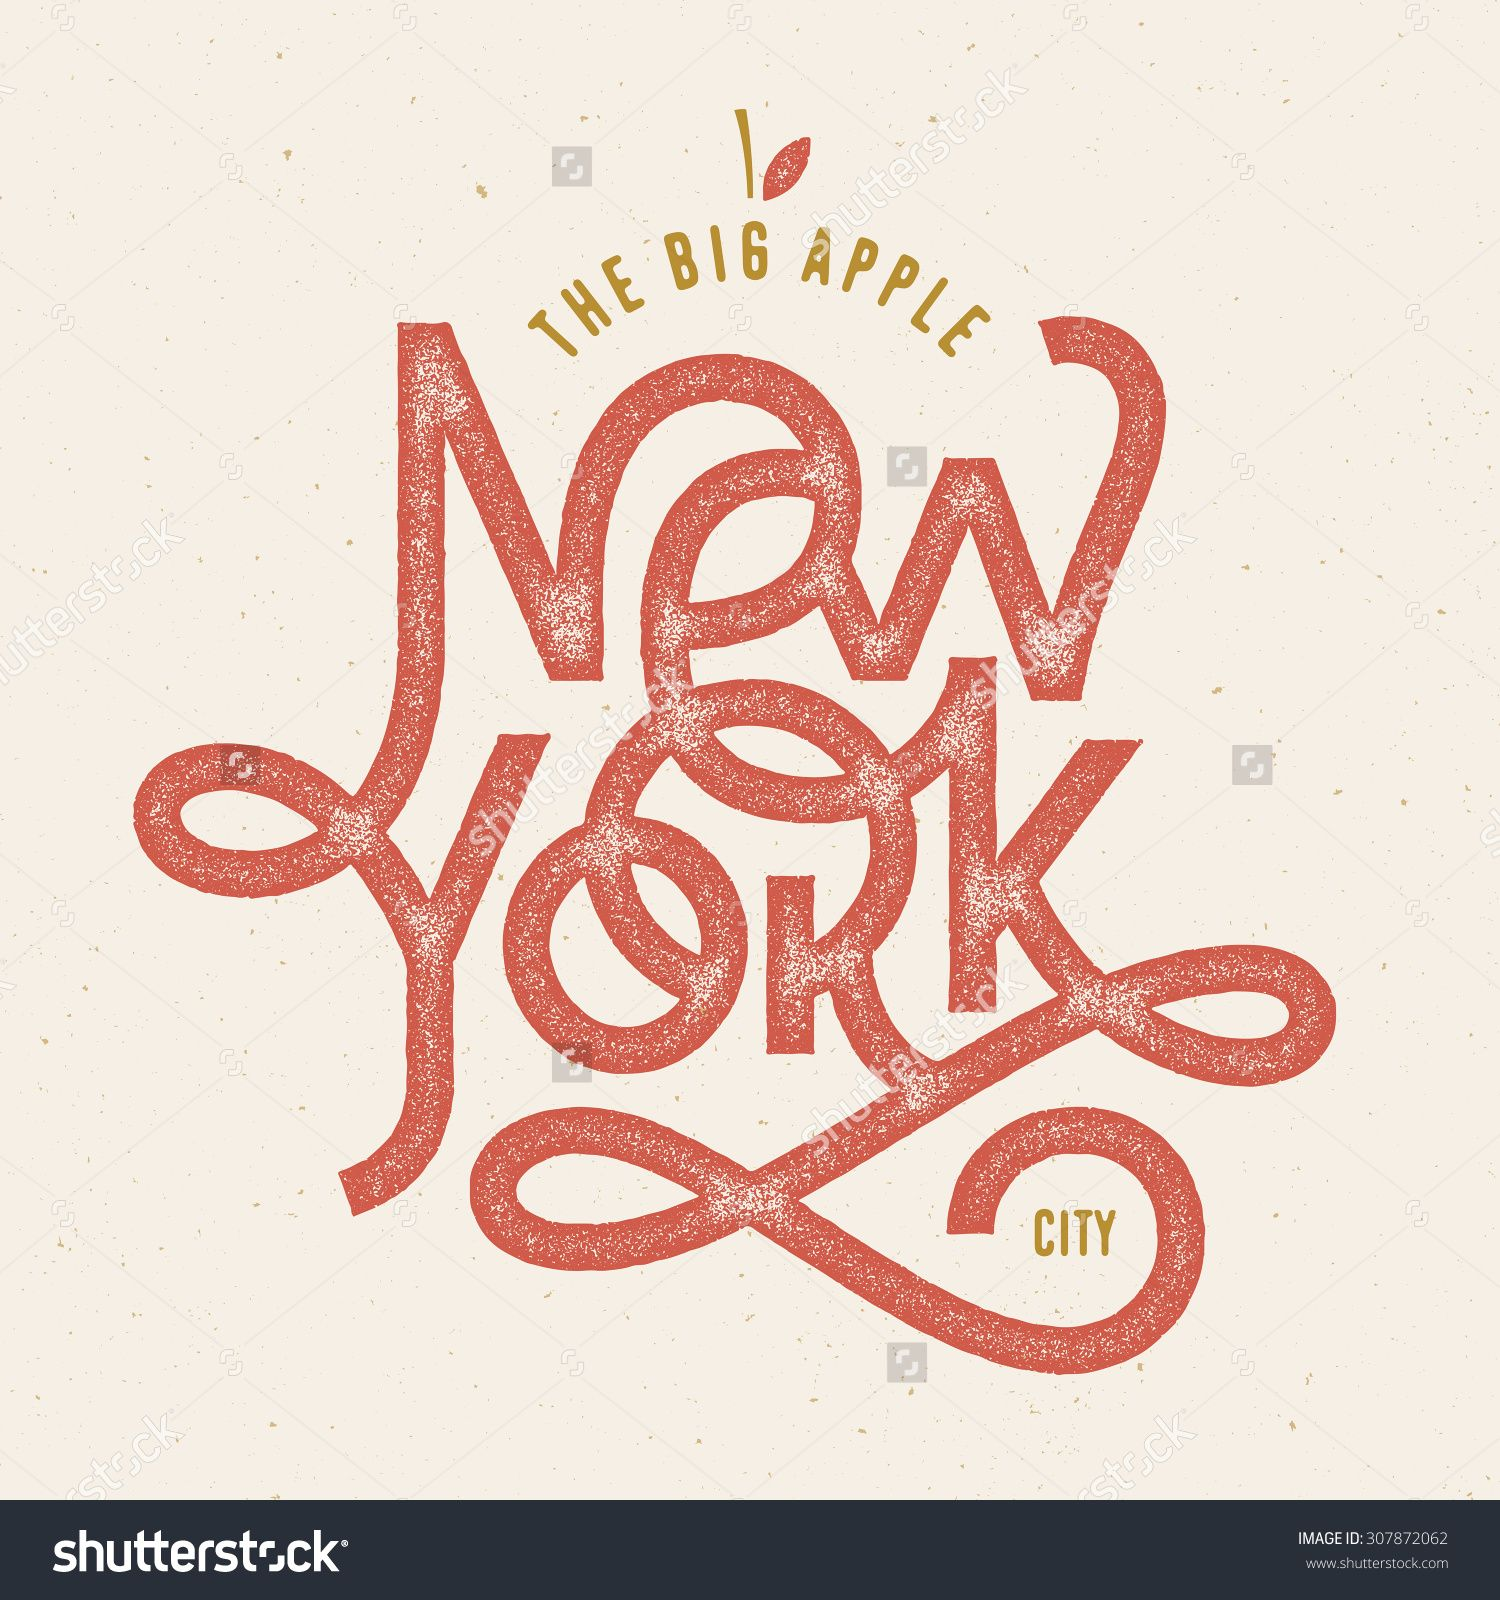 Vintage Hand Lettered Textured The Big Apple New York City T Shirt Apparel Fashion Print Retro Old School Tee Graphics Custom Type Design Hand Drawn Typographic Composition Wall Decor Art Poster Illustrazione vettoriale d'archivio 307872062 : Shutterstock